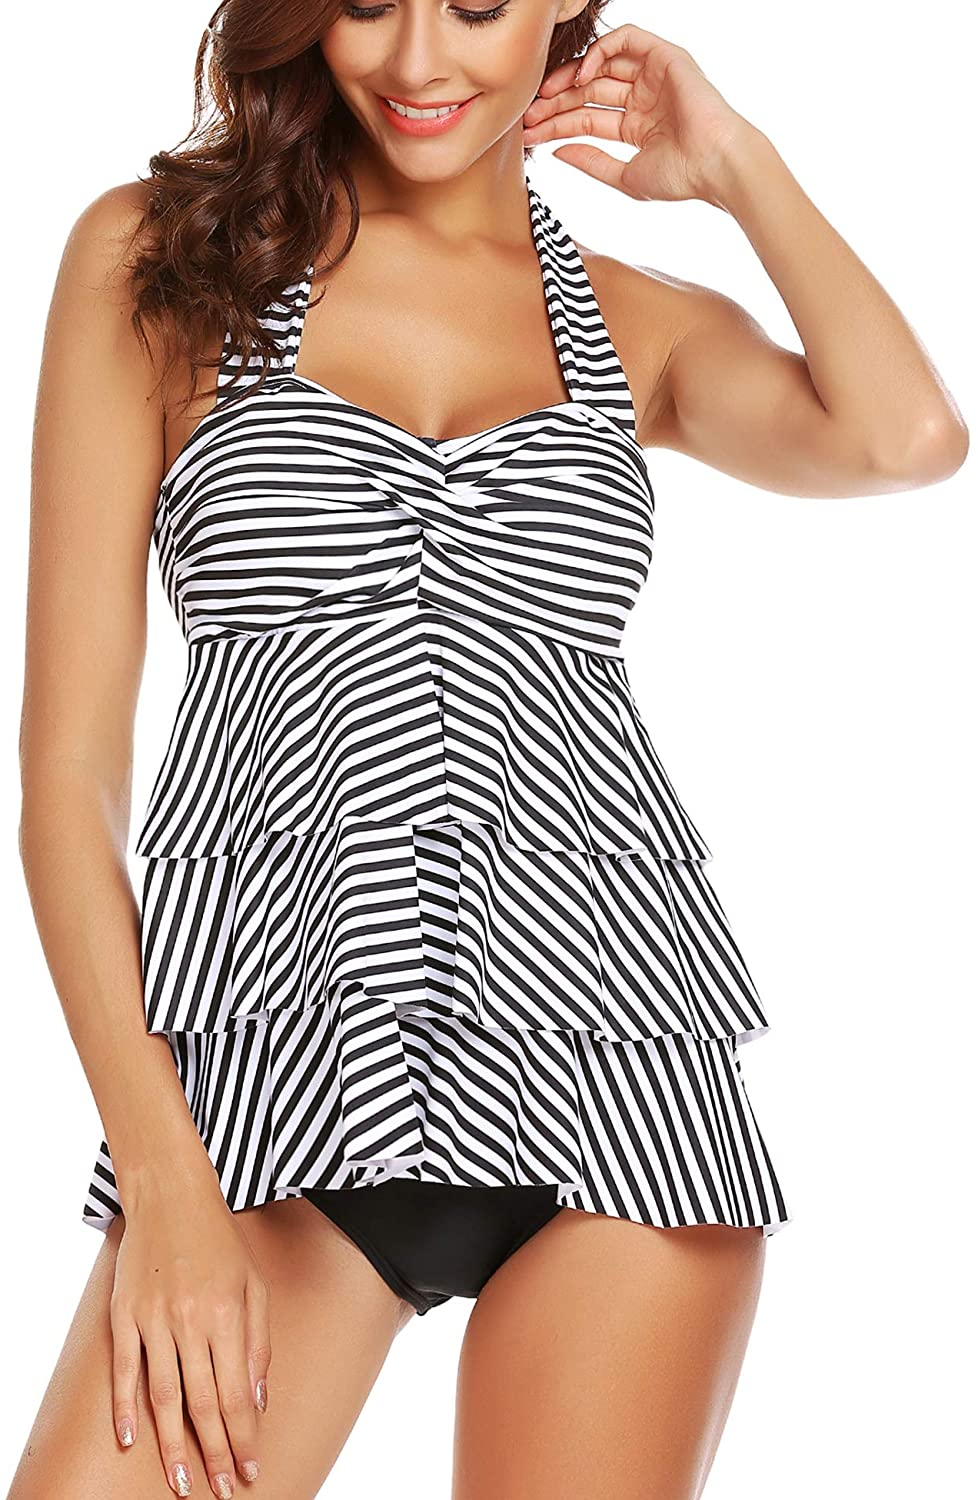 ADOME Women's Halter Swimsuit Striped Ruffles Two Piece Tankini with Briefs